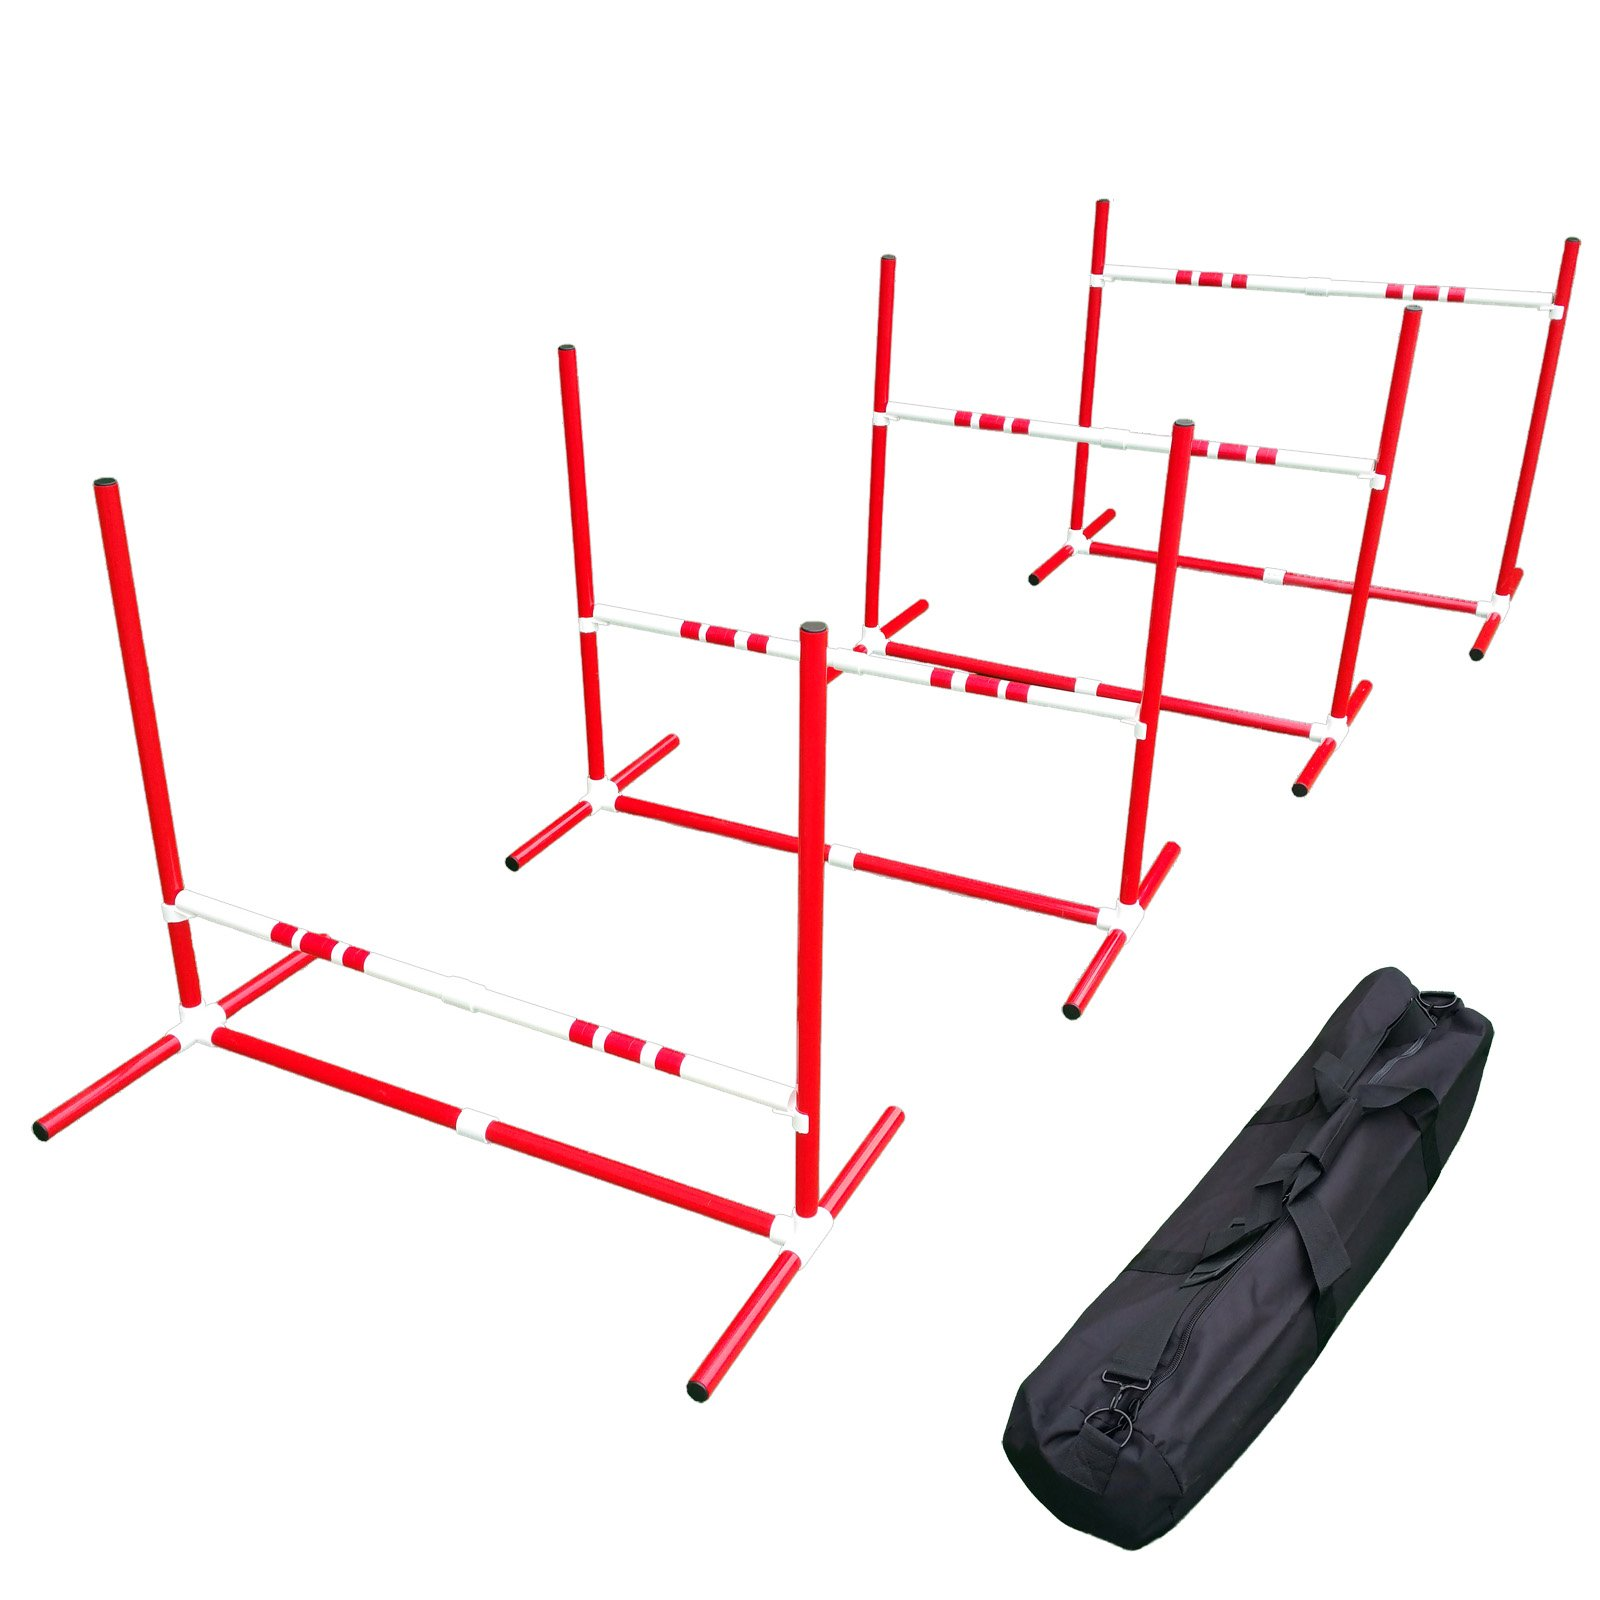 Affordable Agility Red Travel Jump Set by Affordable Agility